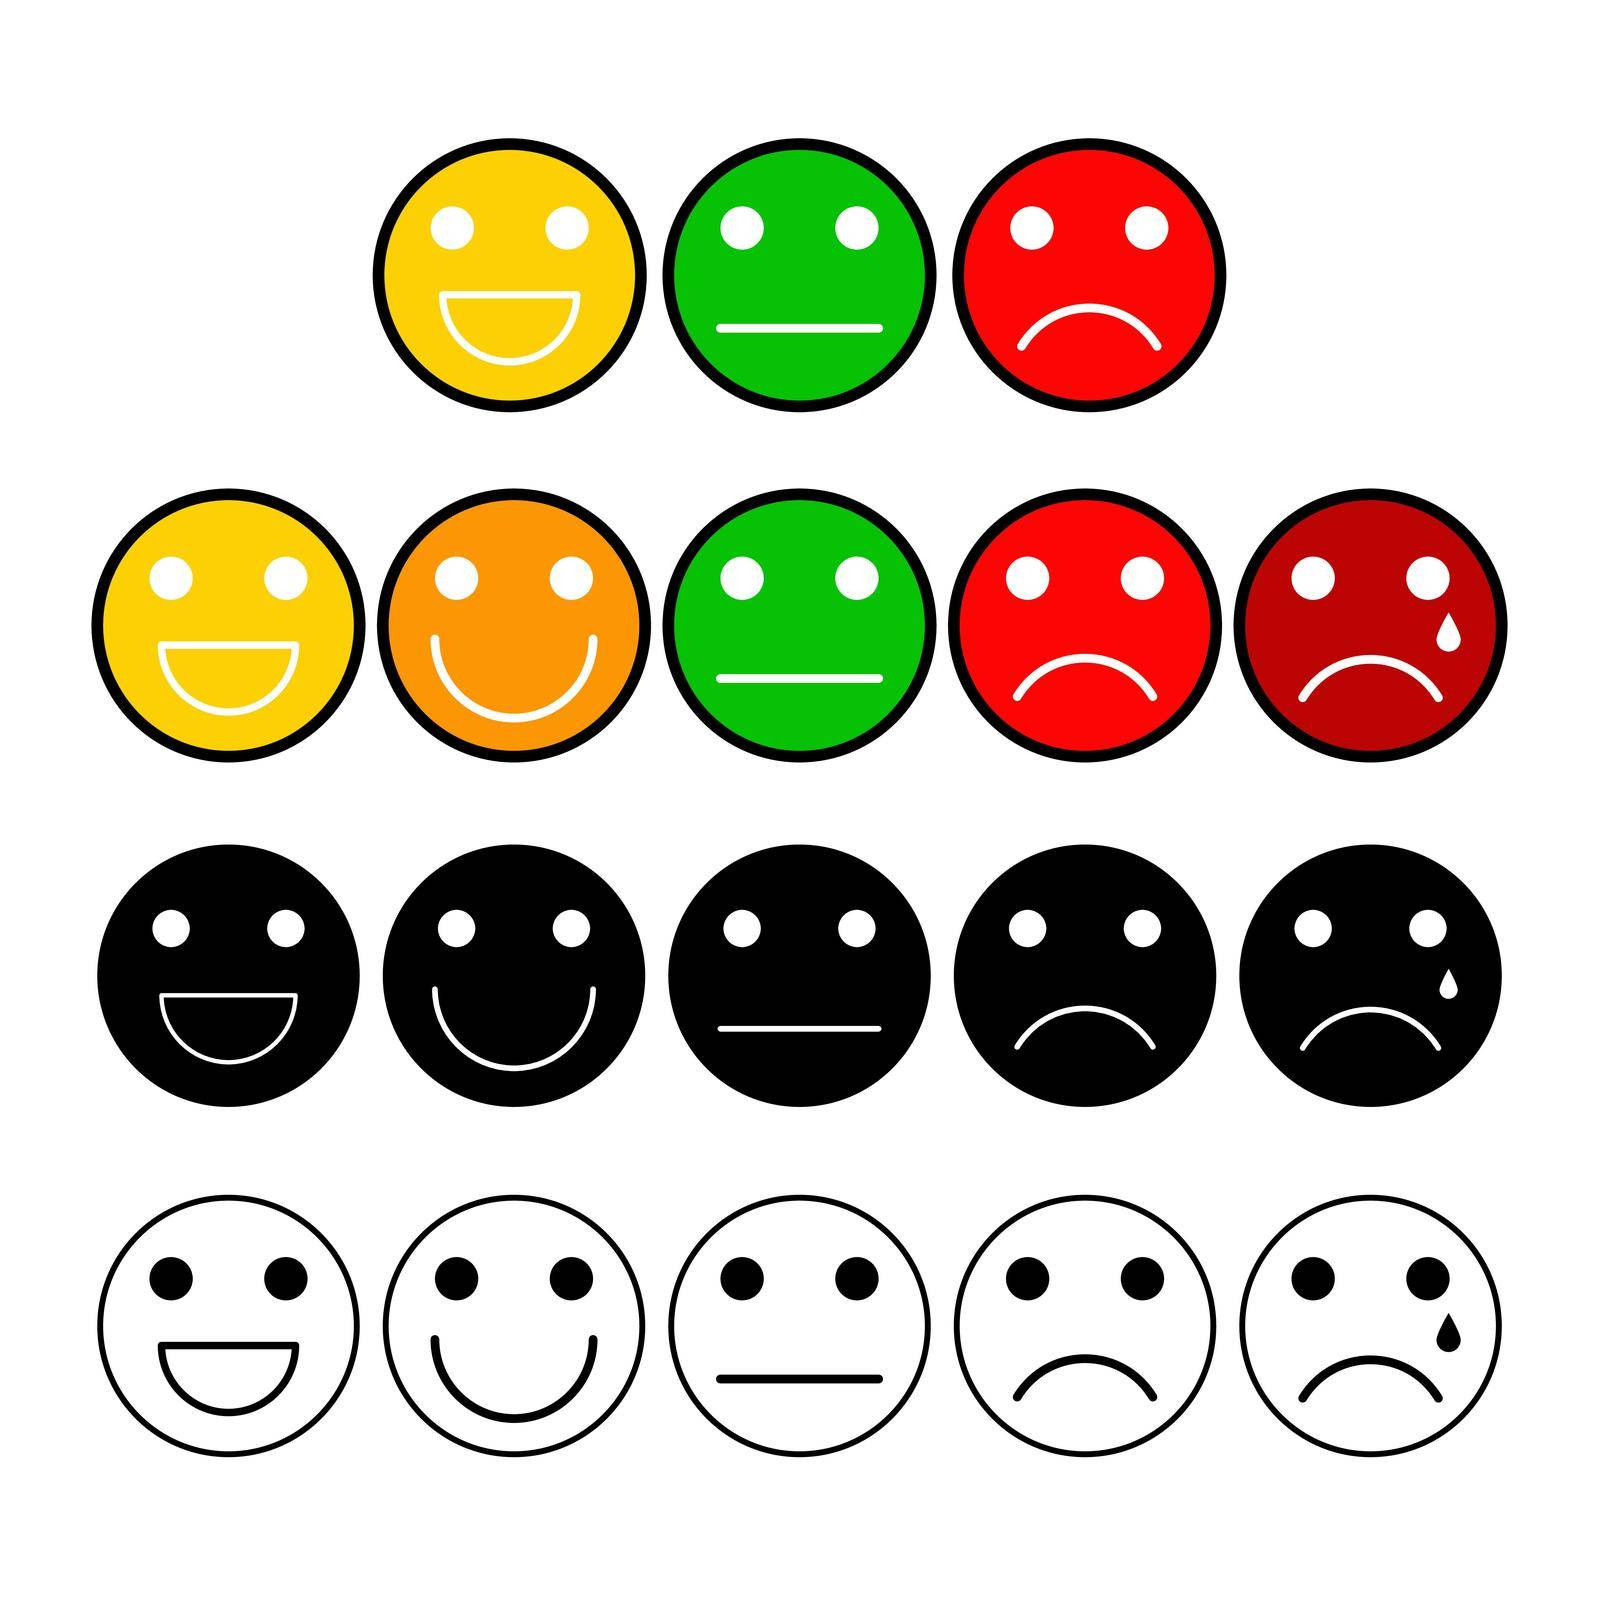 Customer opinion survey buttons set. Mood grade with emoji face. Client satisfaction measurement scale icons. Vector illustration isolated on white background.